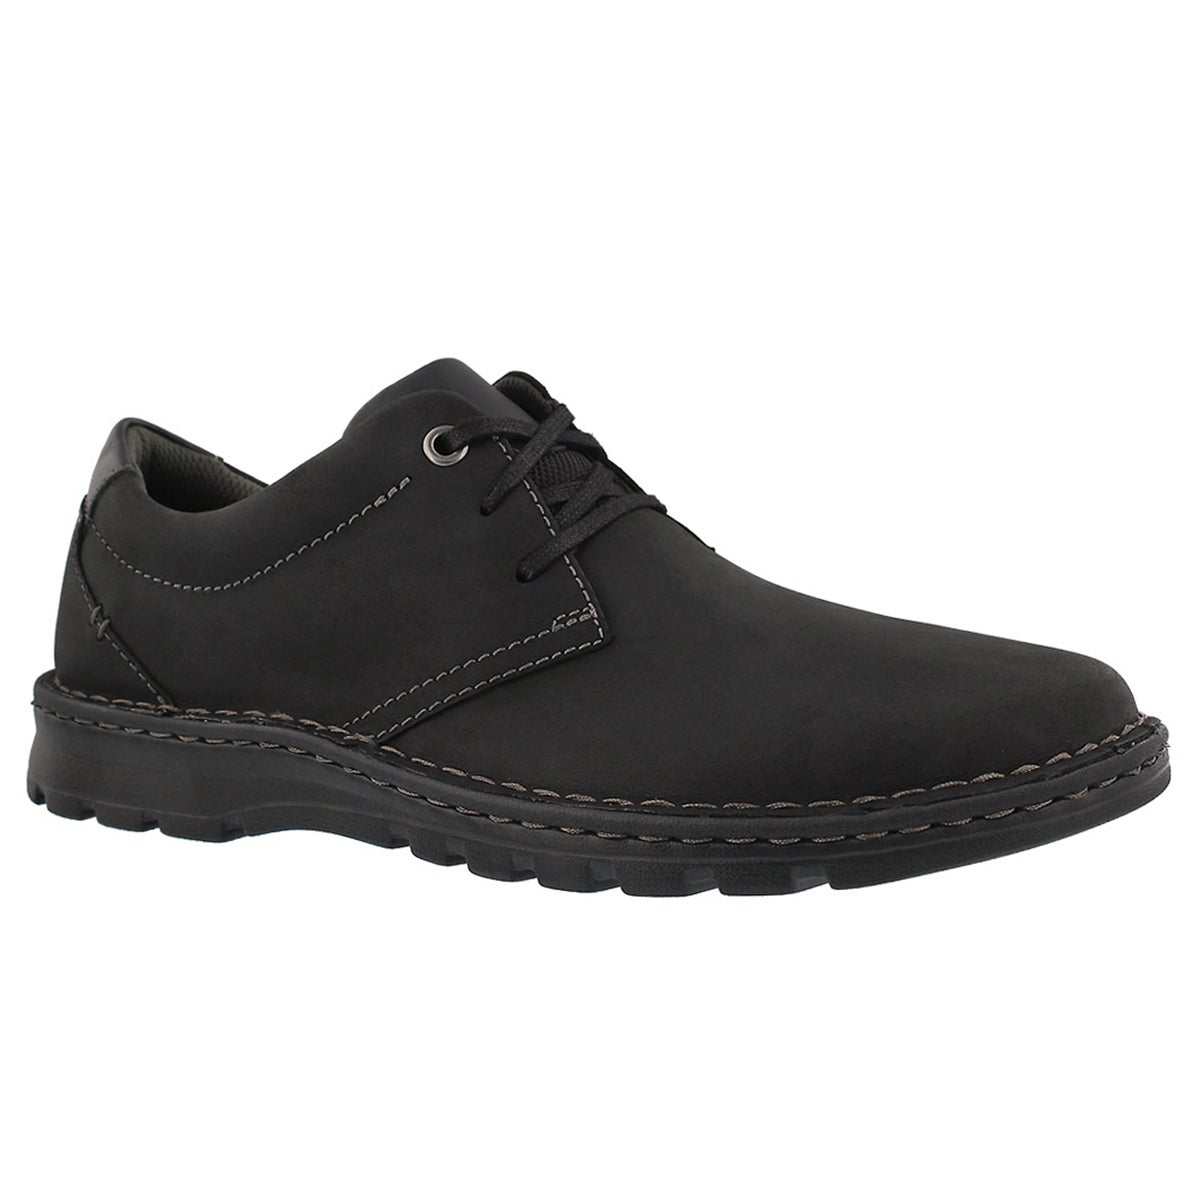 Men's VANEK PLAIN black casual oxfords